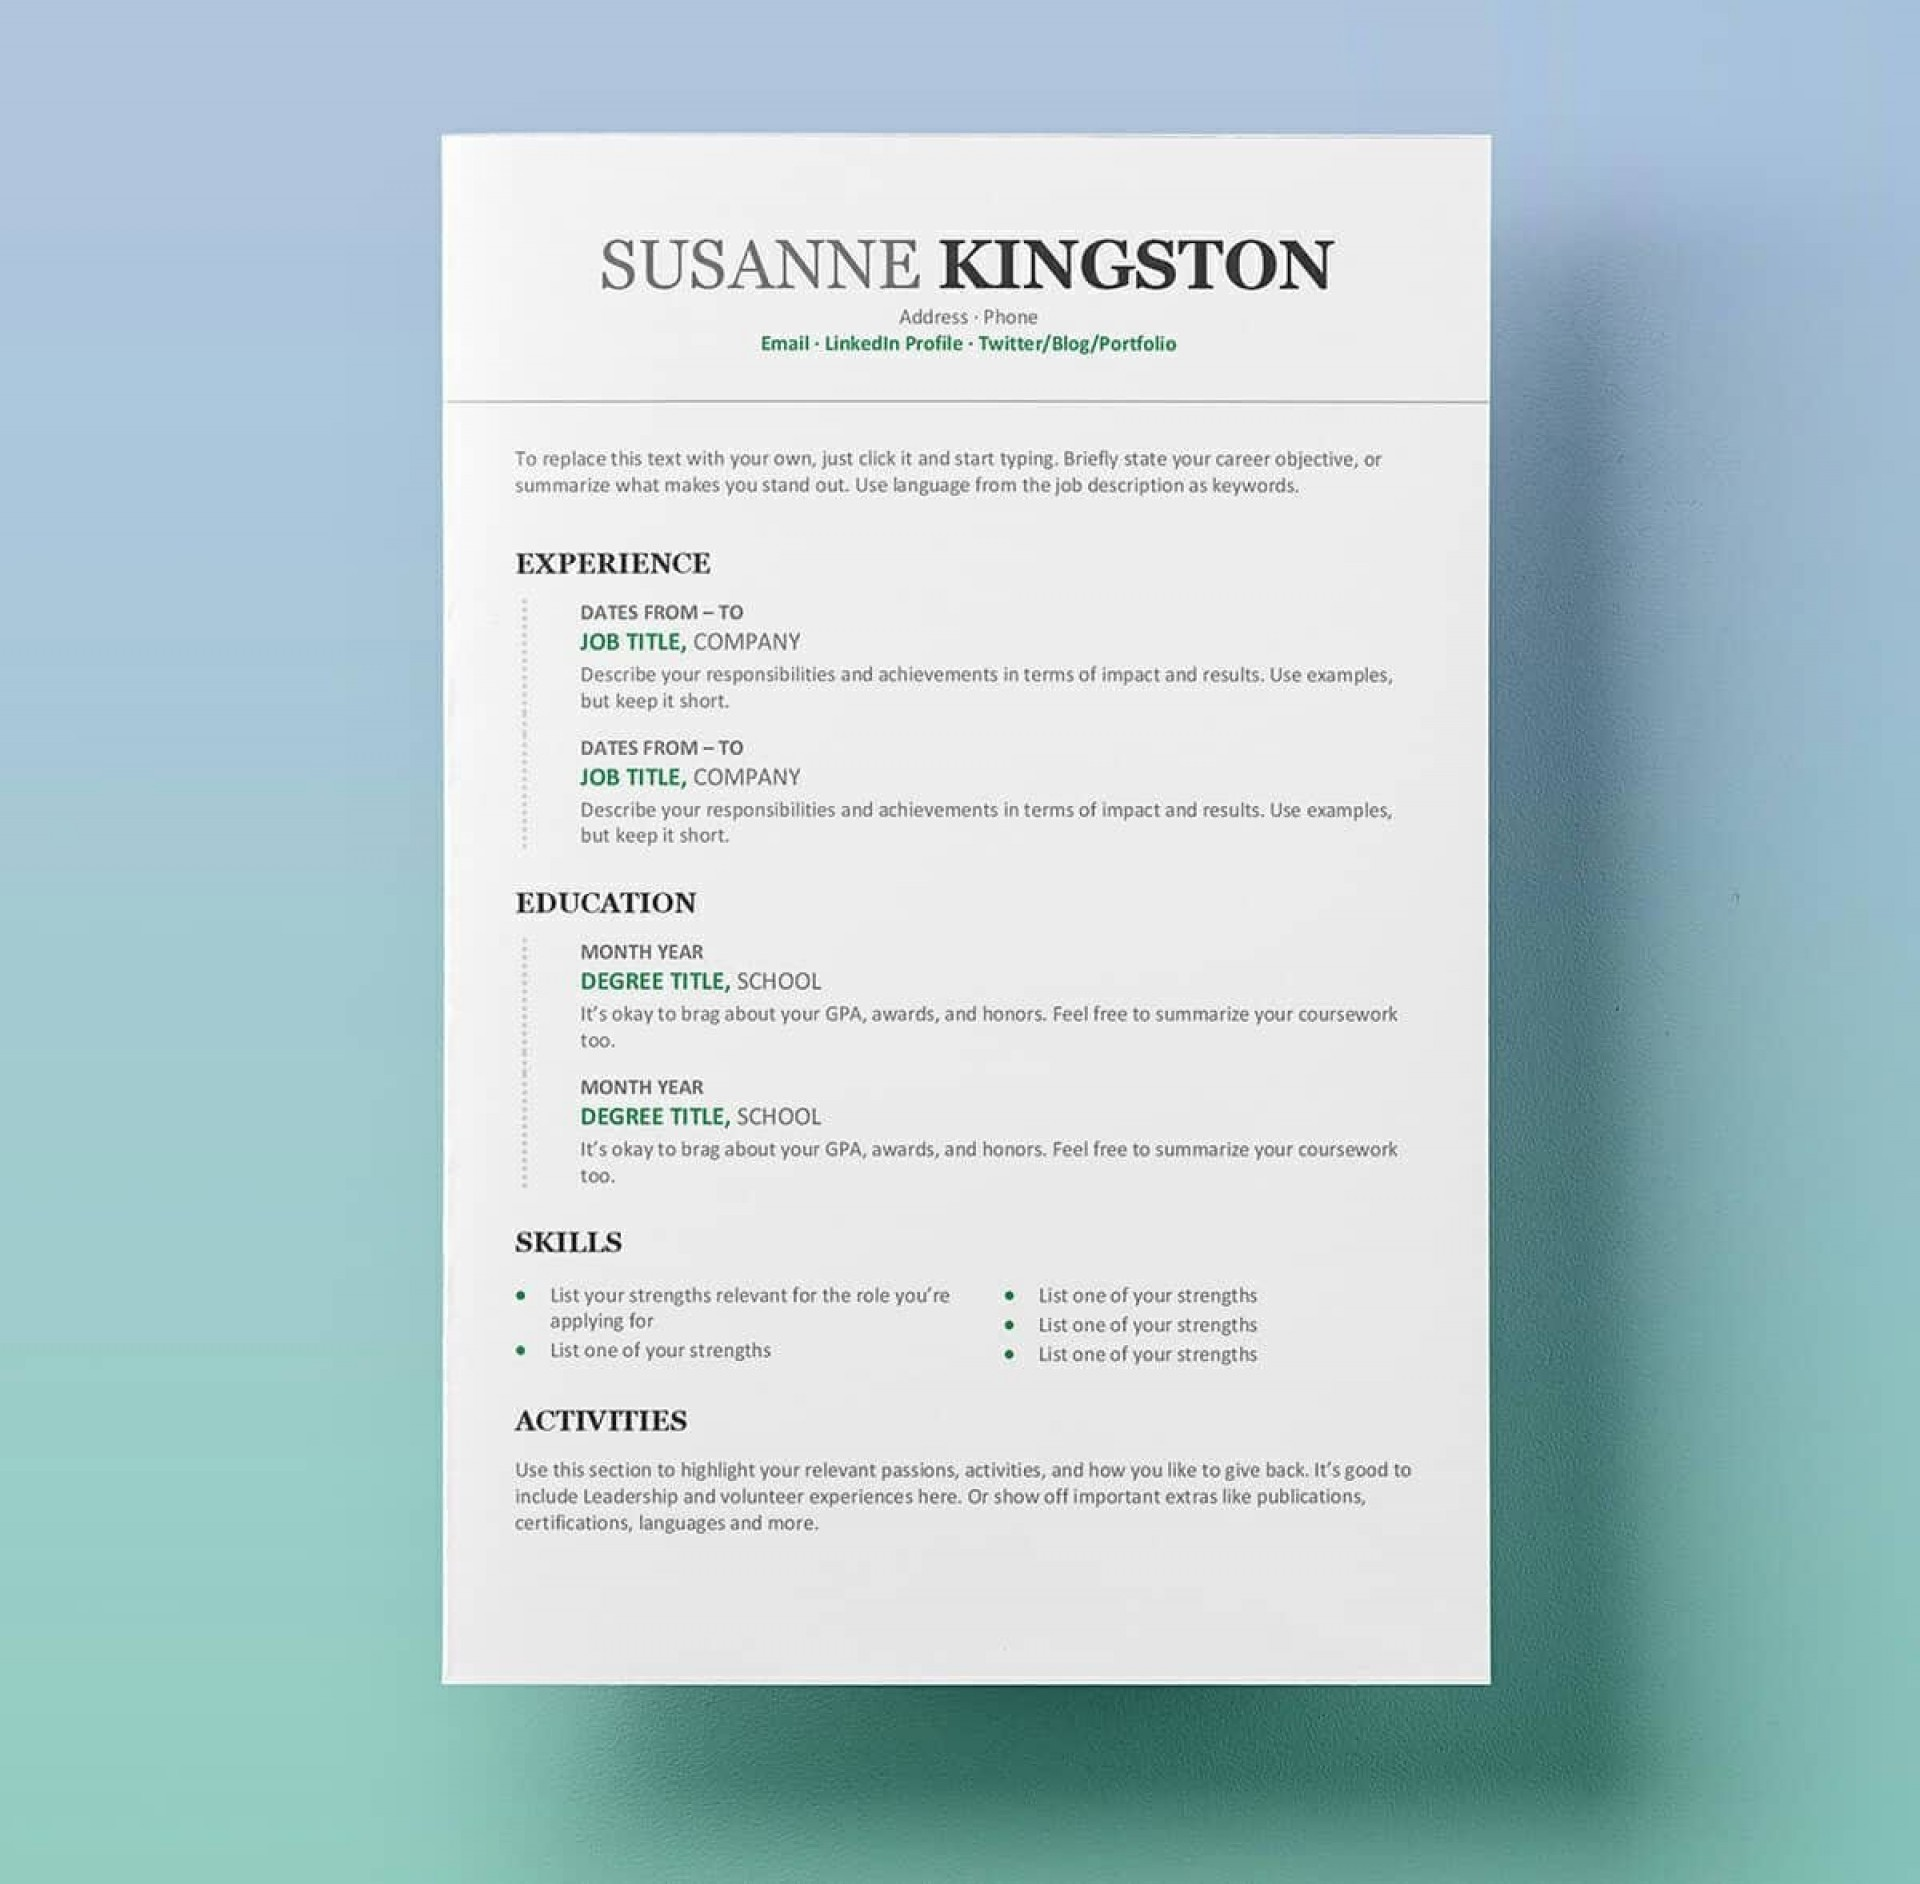 007 Impressive Free Blank Resume Template Word Photo  Downloadable M For Microsoft1920